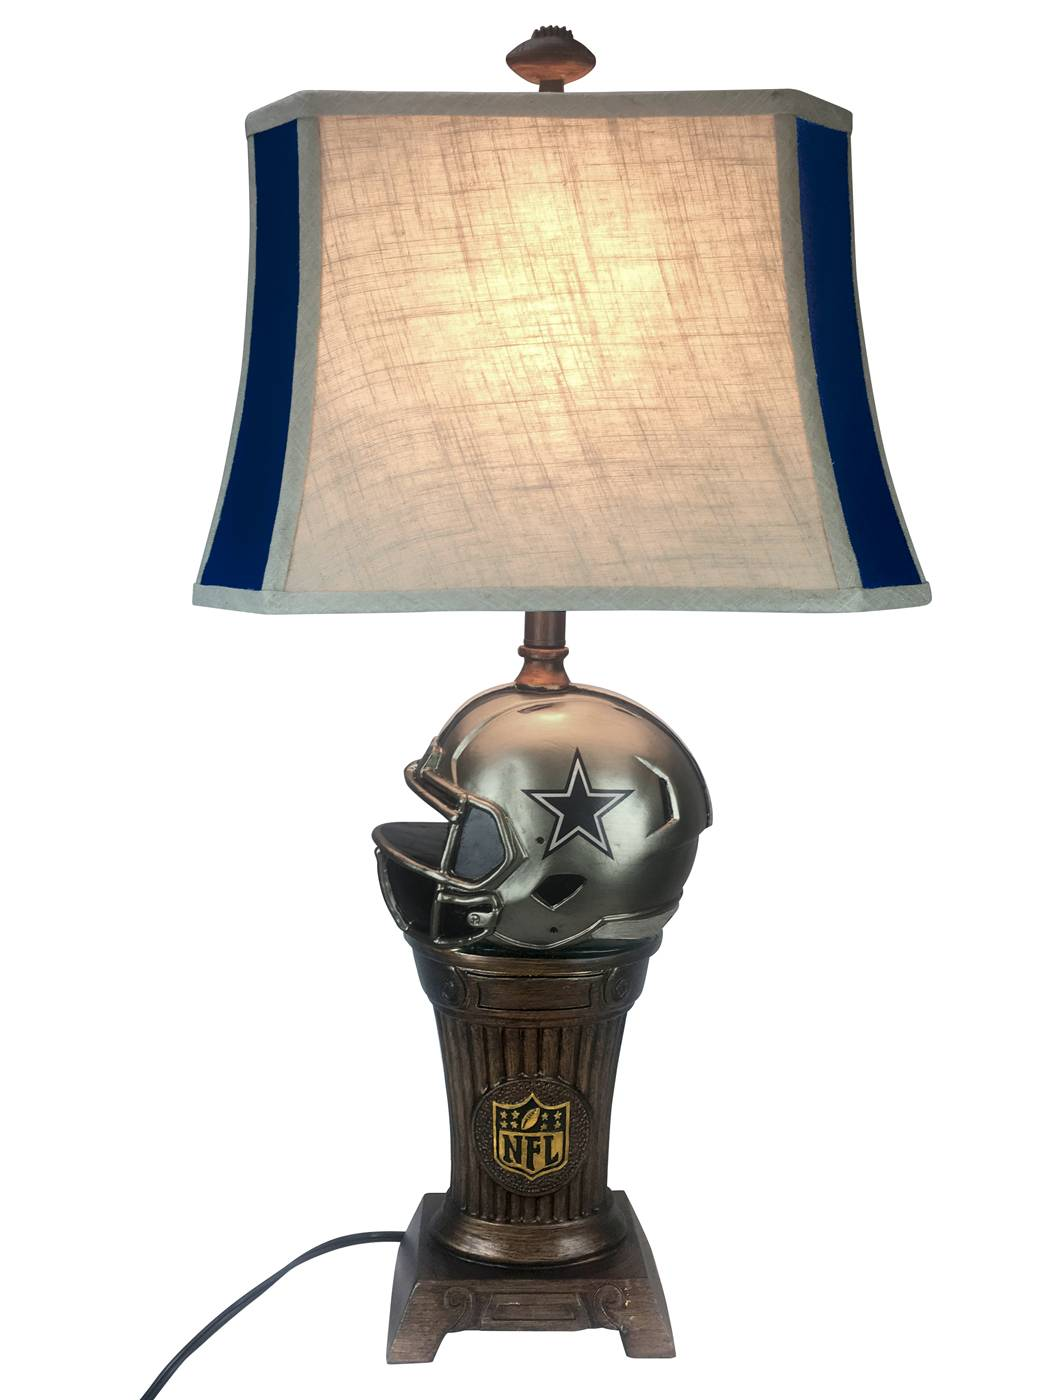 With Its Antique Appearance, The Dallas Cowboys Trophy Lamp Is Perfect For  The Fan That Appreciates A Vintage Look And Feel. It Features A Hand  Painted ...